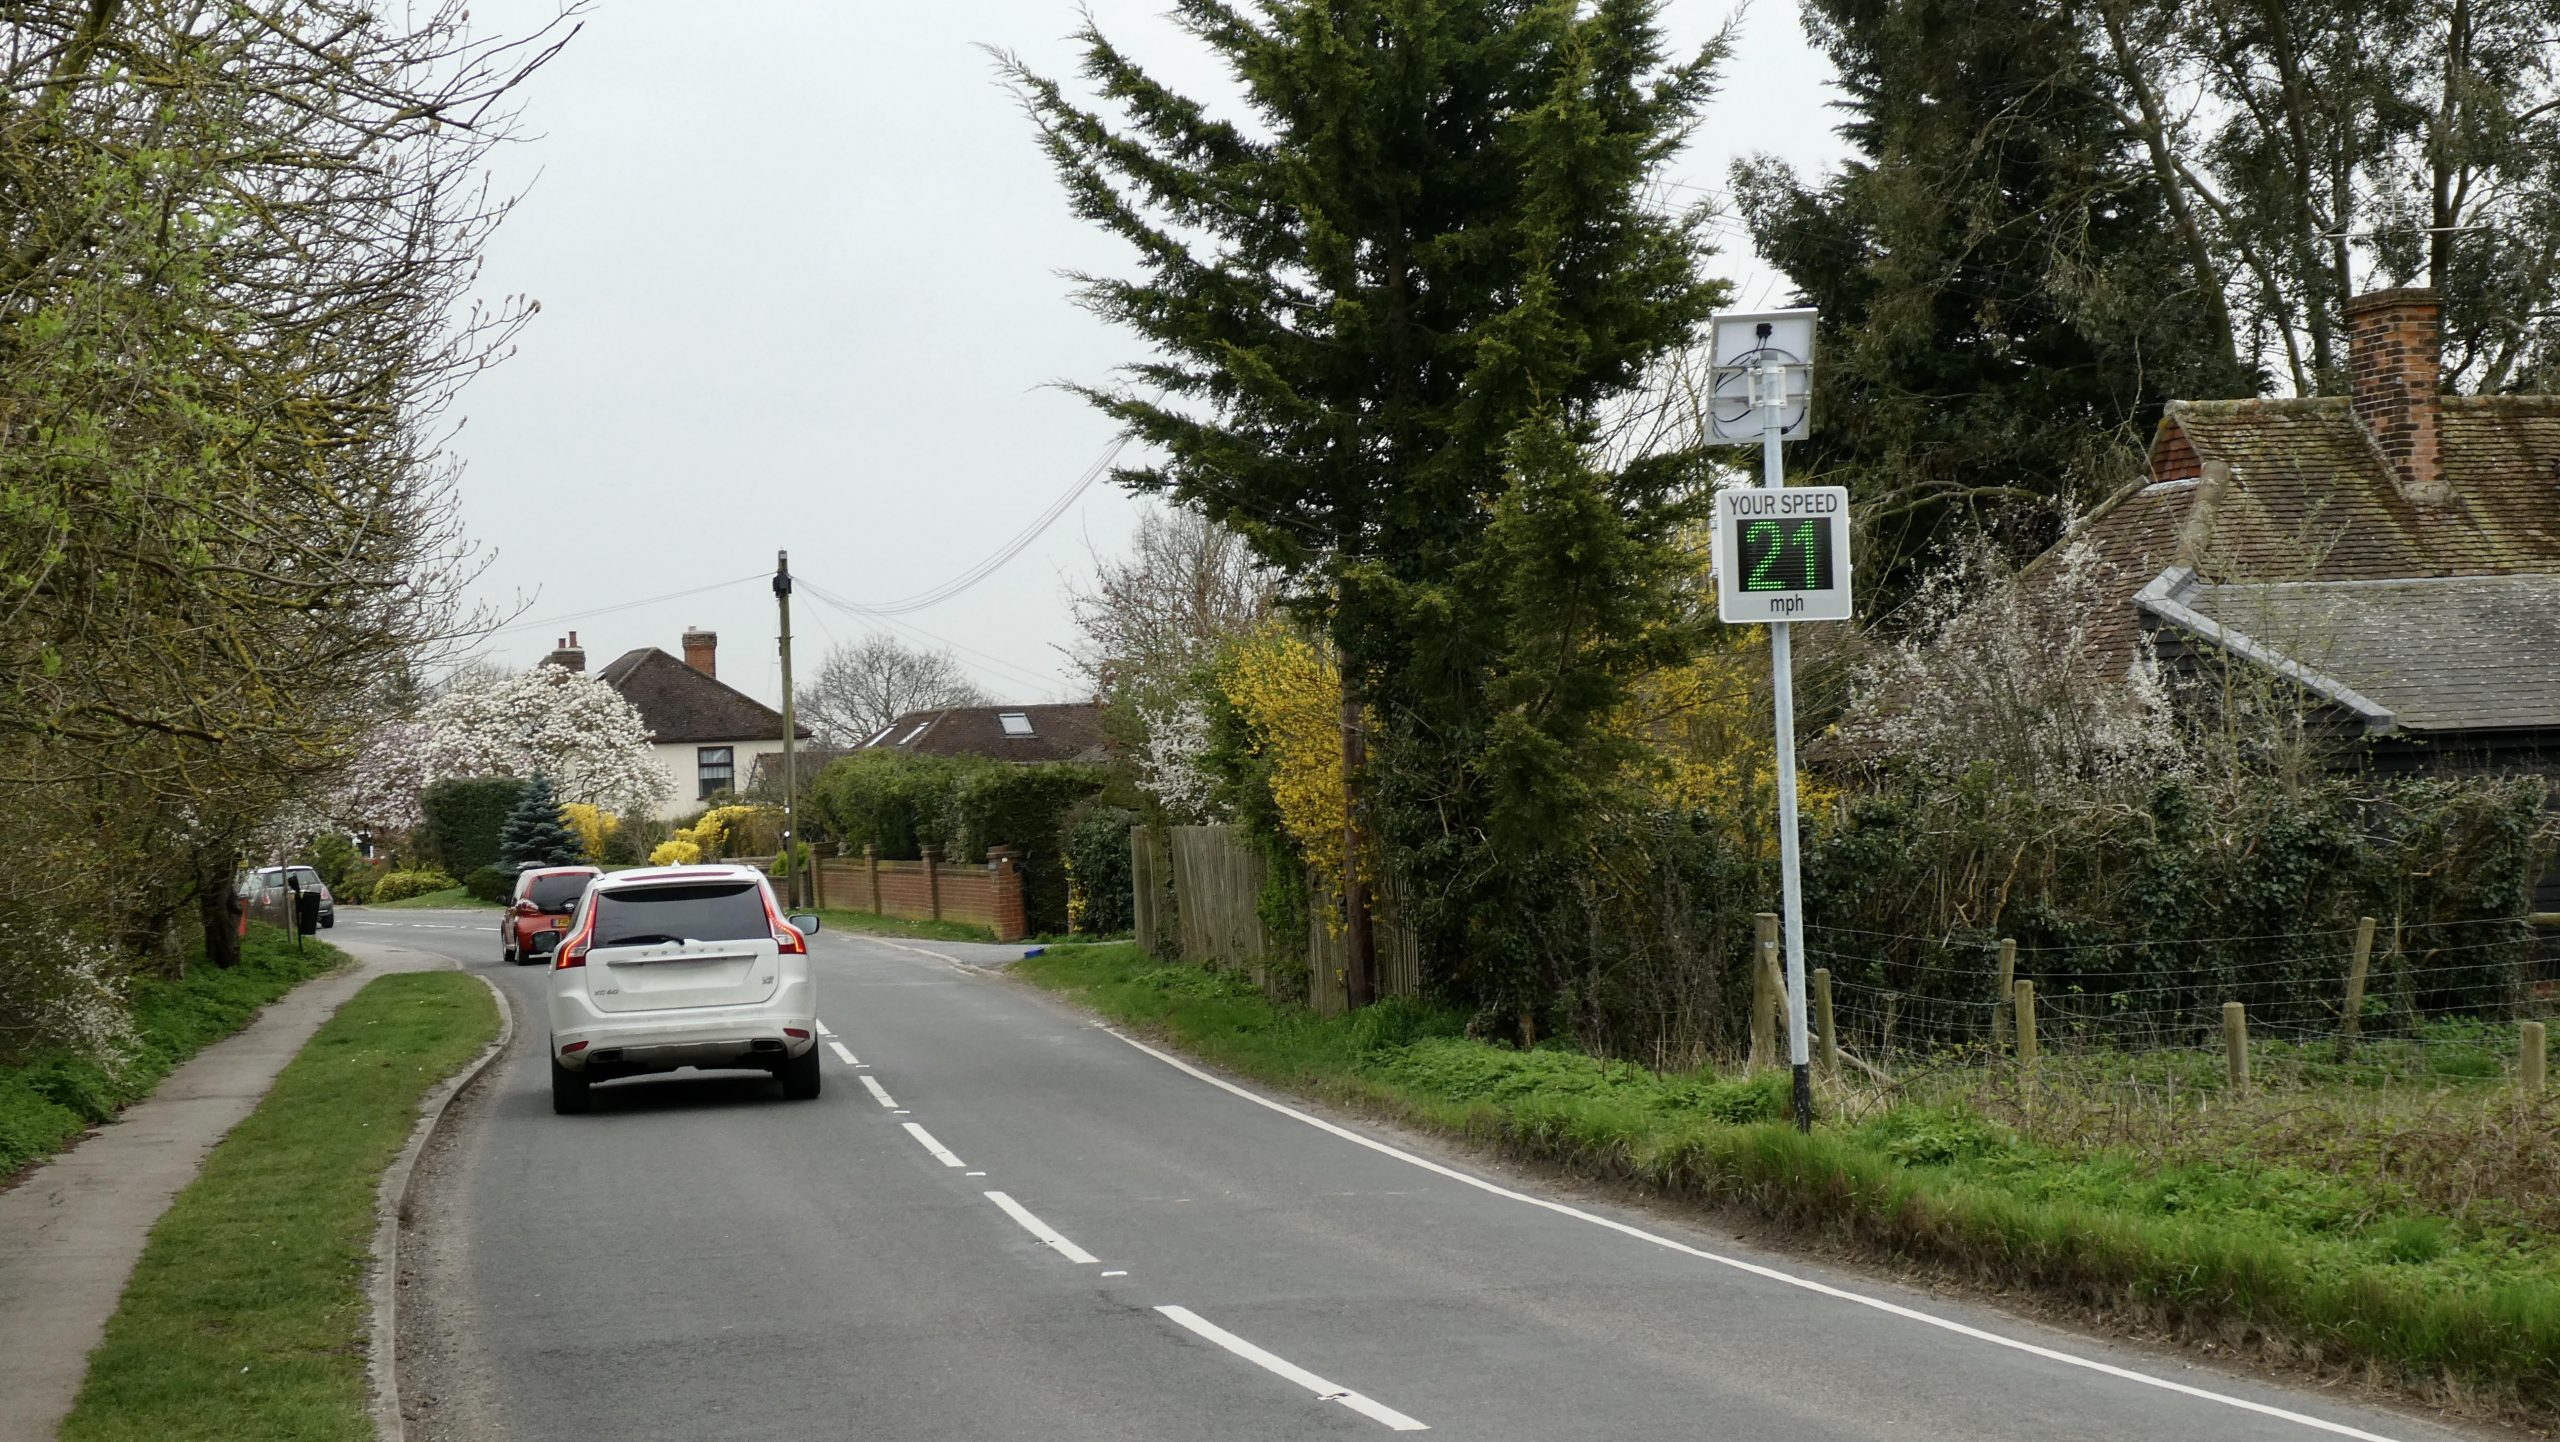 Hunsdon Road Speed Sign